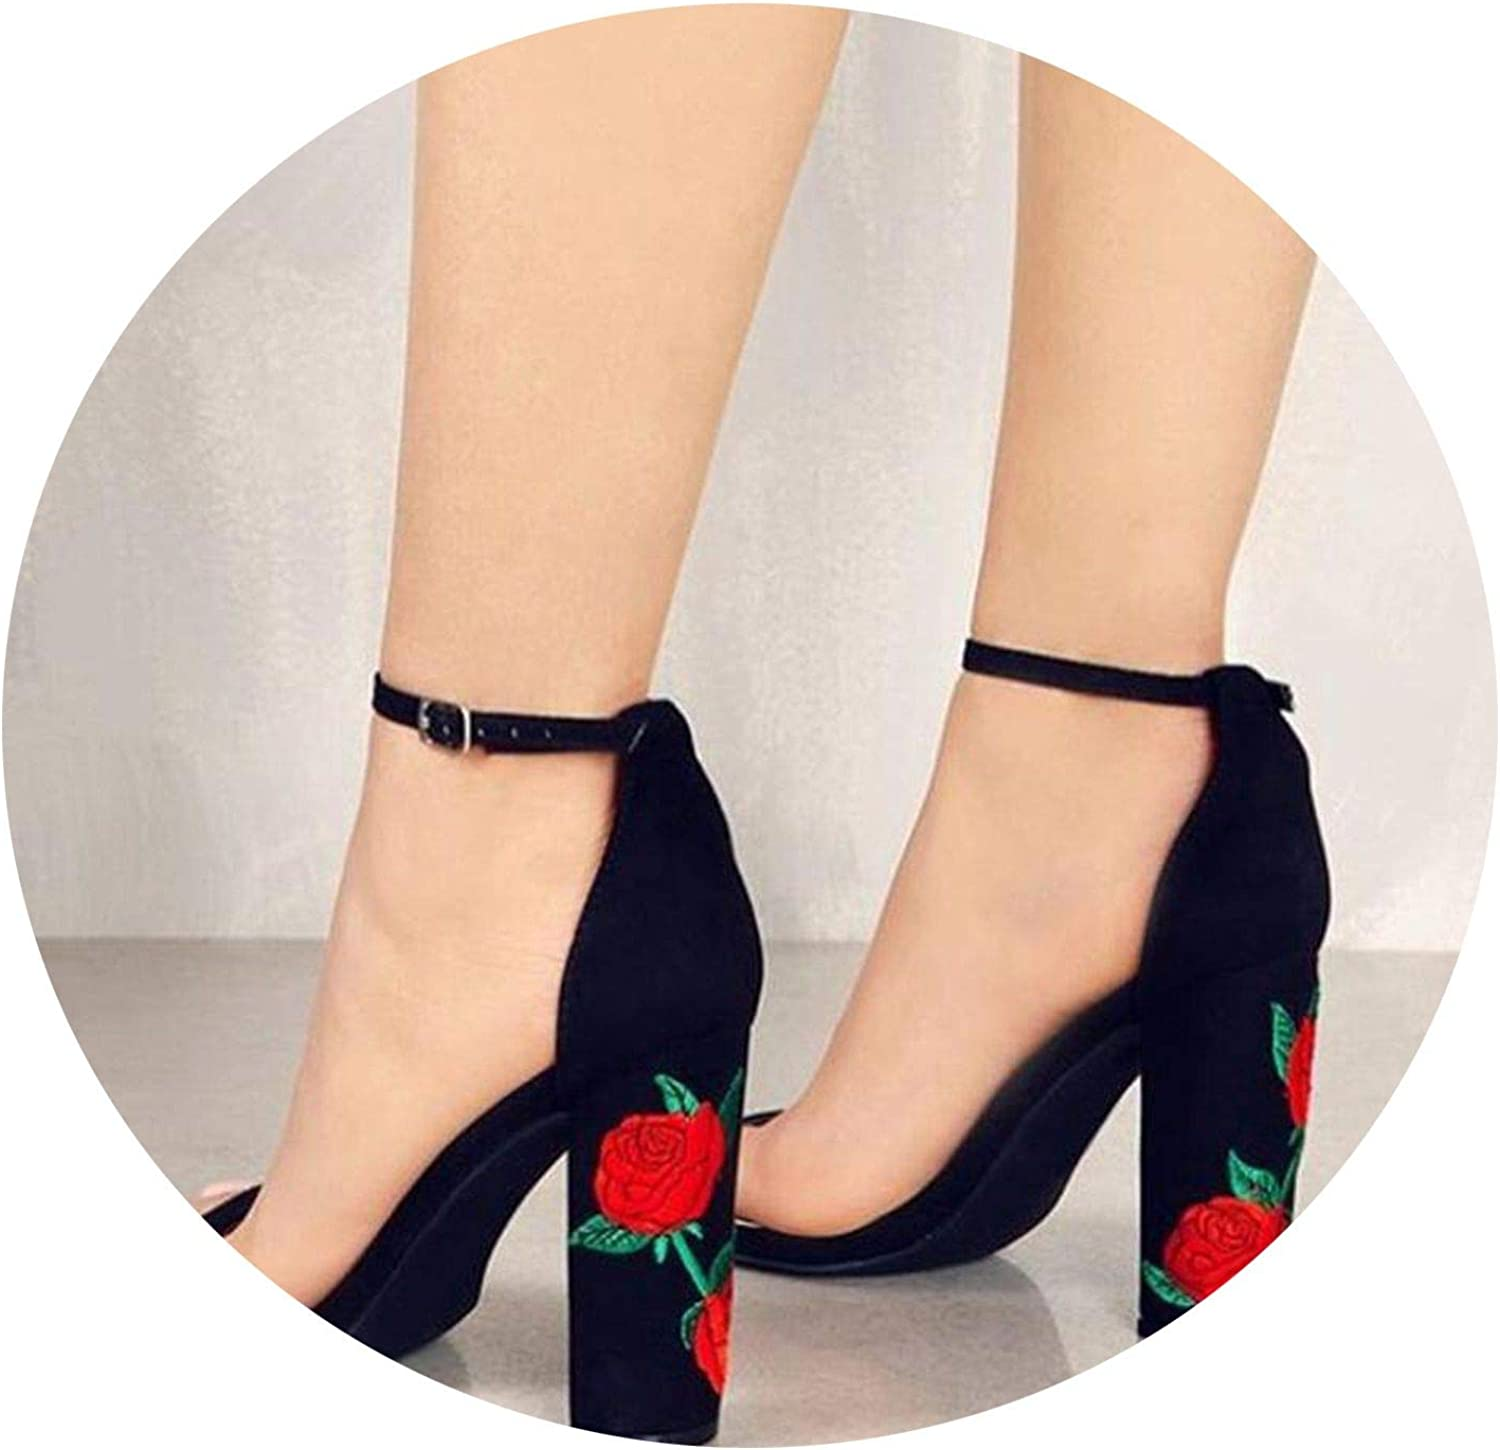 Suede shoes Women Sandal Embroidered High Heel Women Sandals Ethnic Flower Floral Party shoes Plus Size